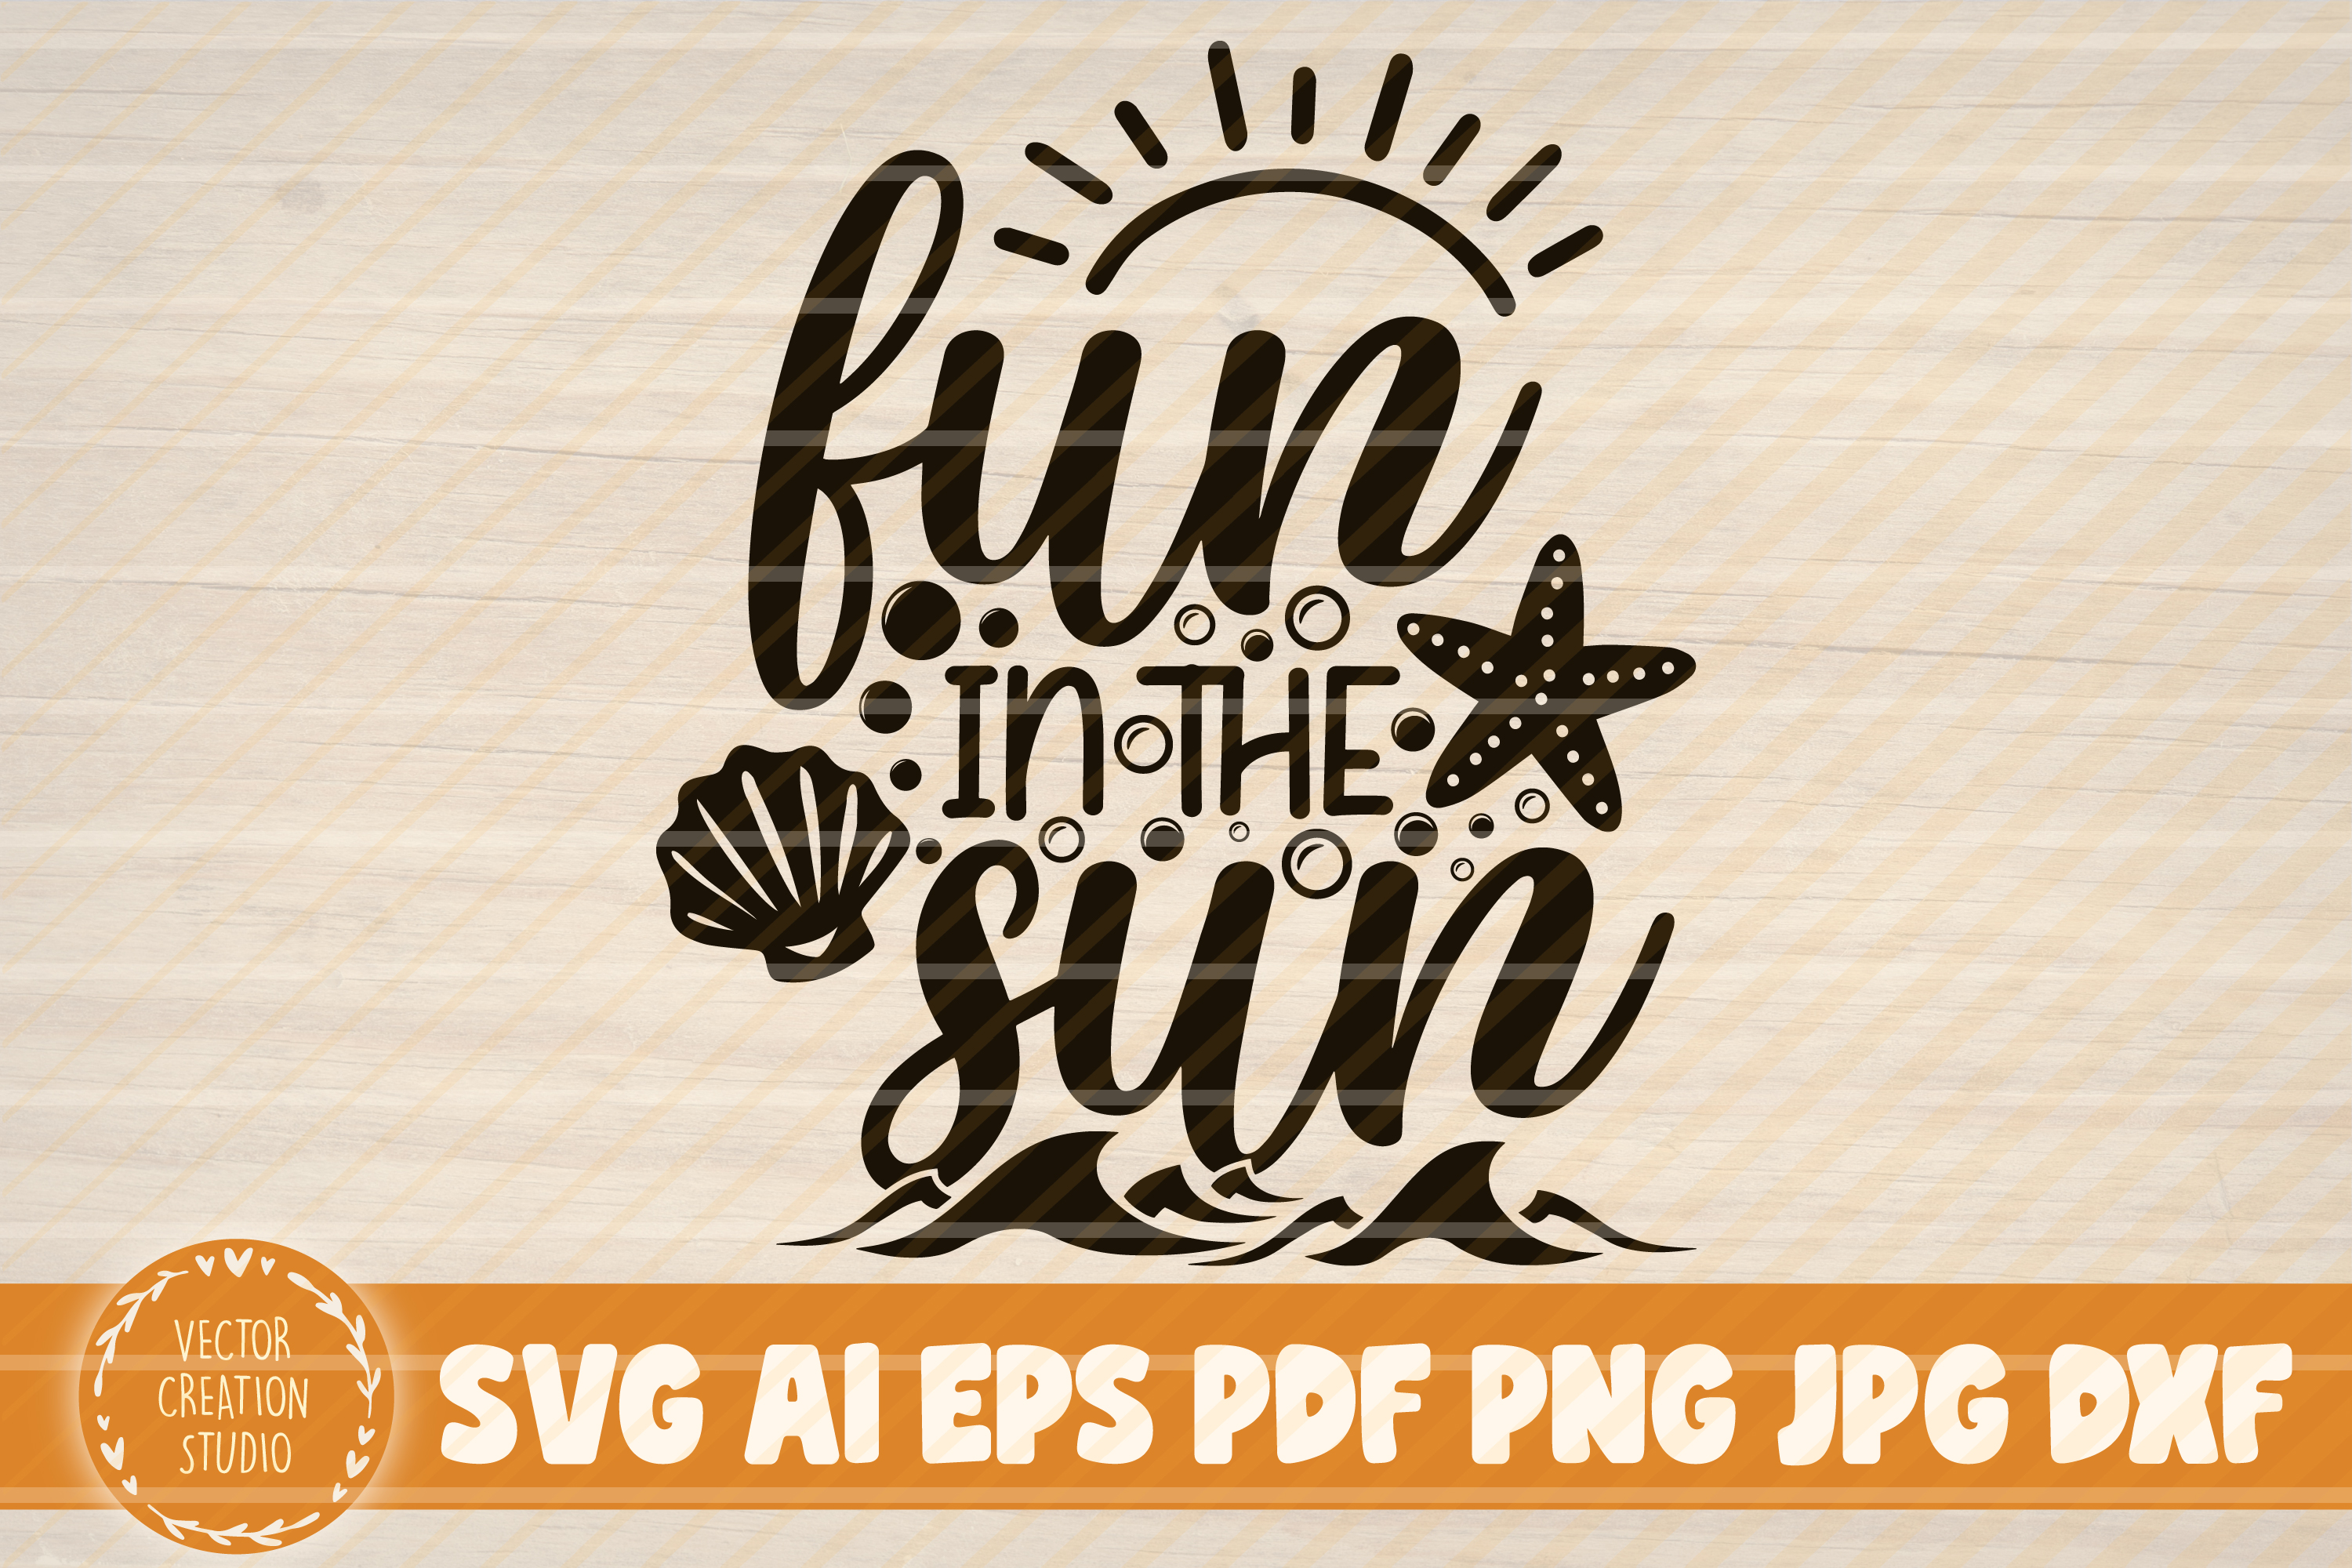 Cute Summer Sun Svg Free Svg Cut Files Create Your Diy Projects Using Your Cricut Explore Silhouette And More The Free Cut Files Include Svg Dxf Eps And Png Files